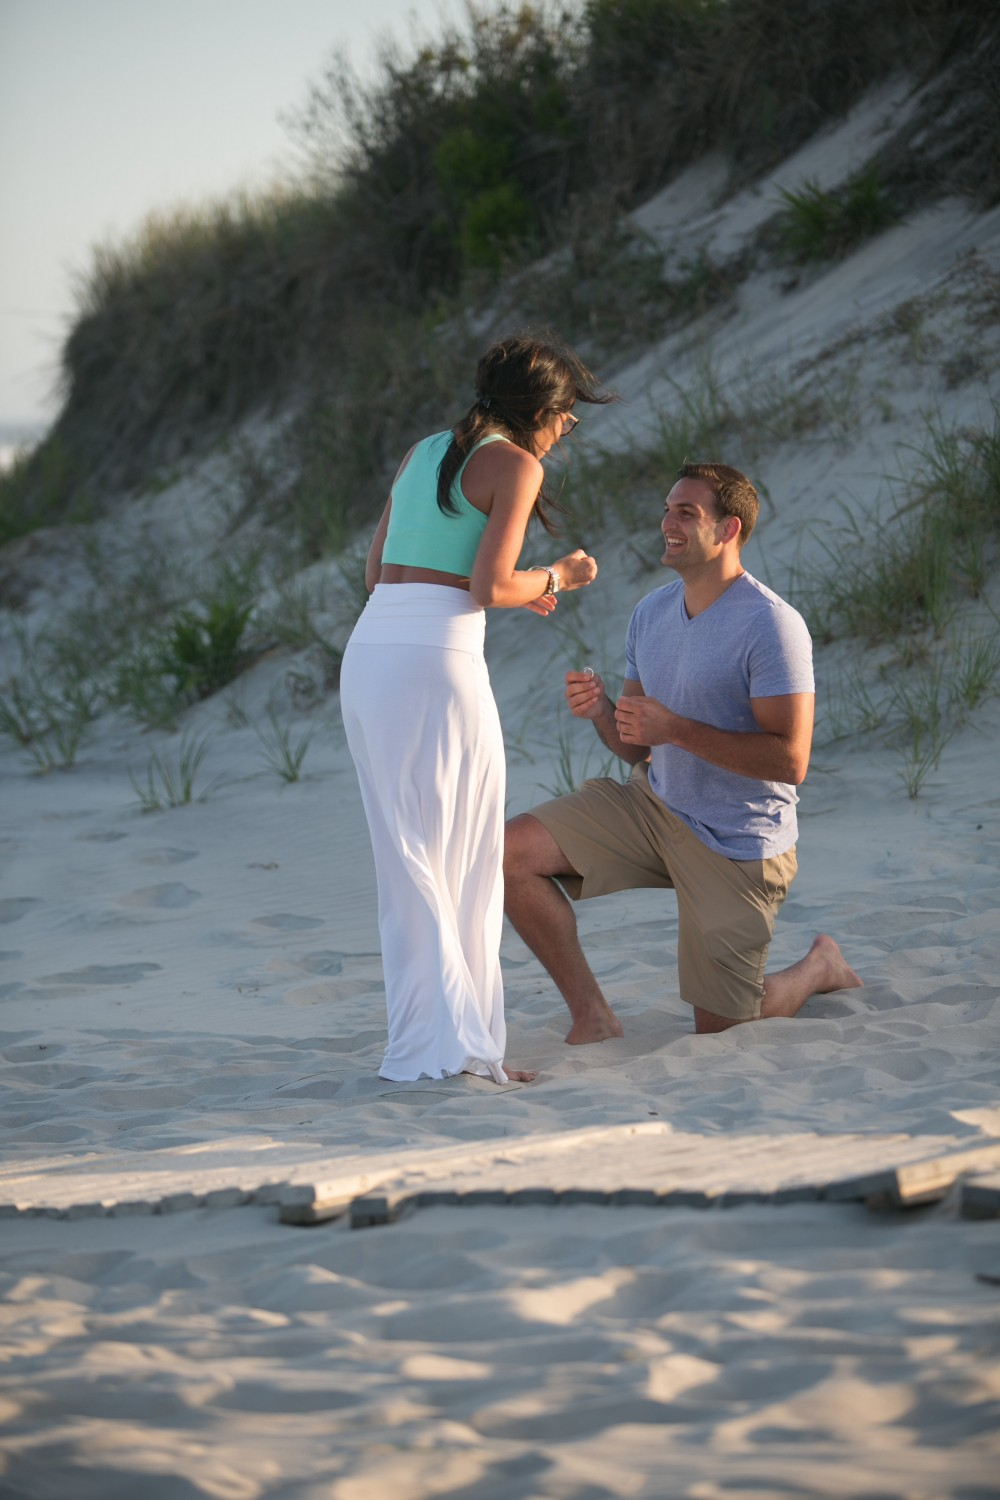 Image 10 of This Girl's Proposal Reaction is The Best We've Ever Seen.